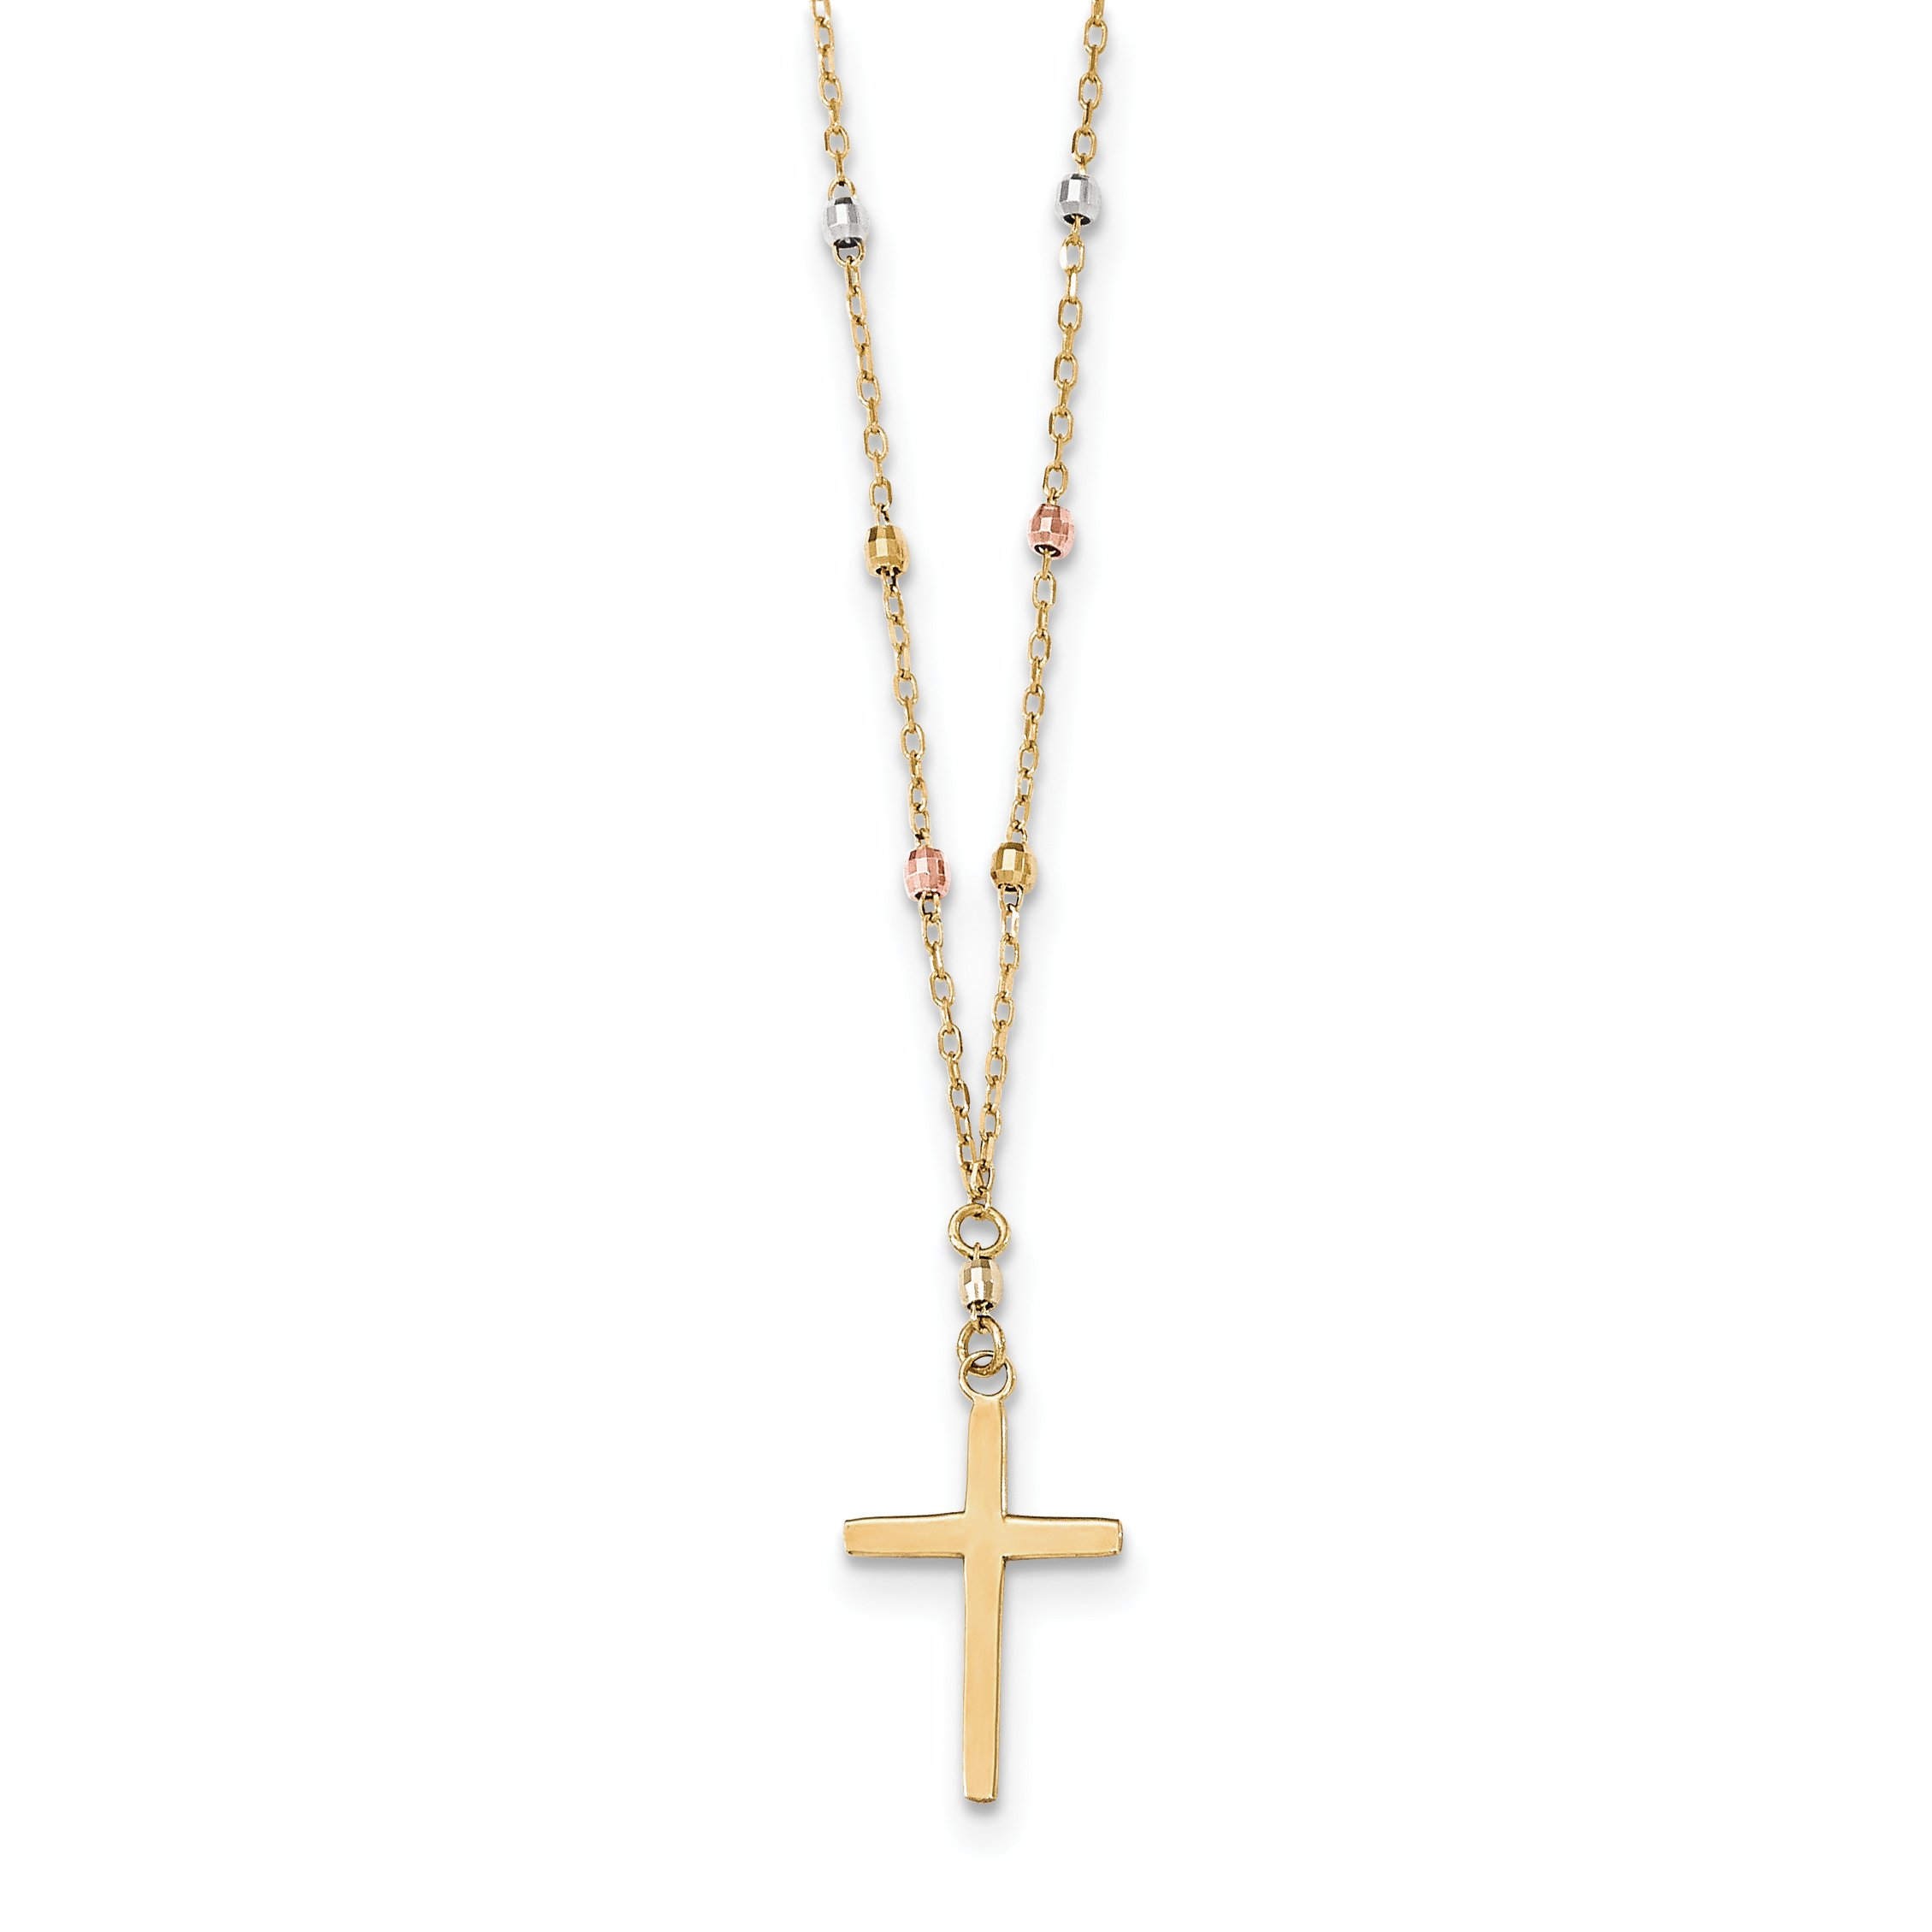 ICE CARATS 14k Tri Colored Gold Beaded Cross Religious Chain Necklace Crucifix Fine Jewelry Gift Set For Women Heart